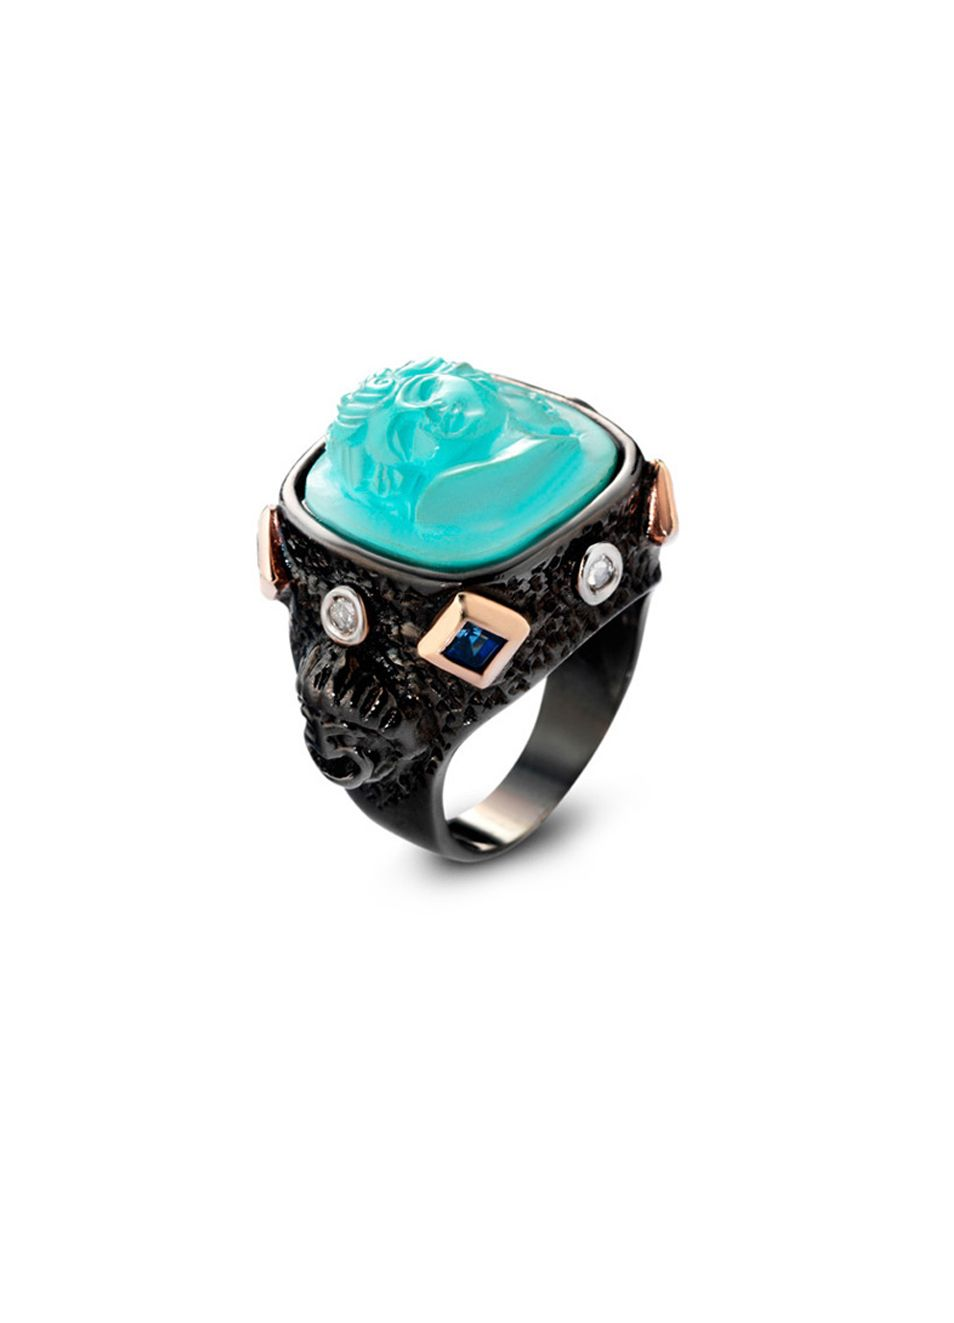 Turquoise face ring